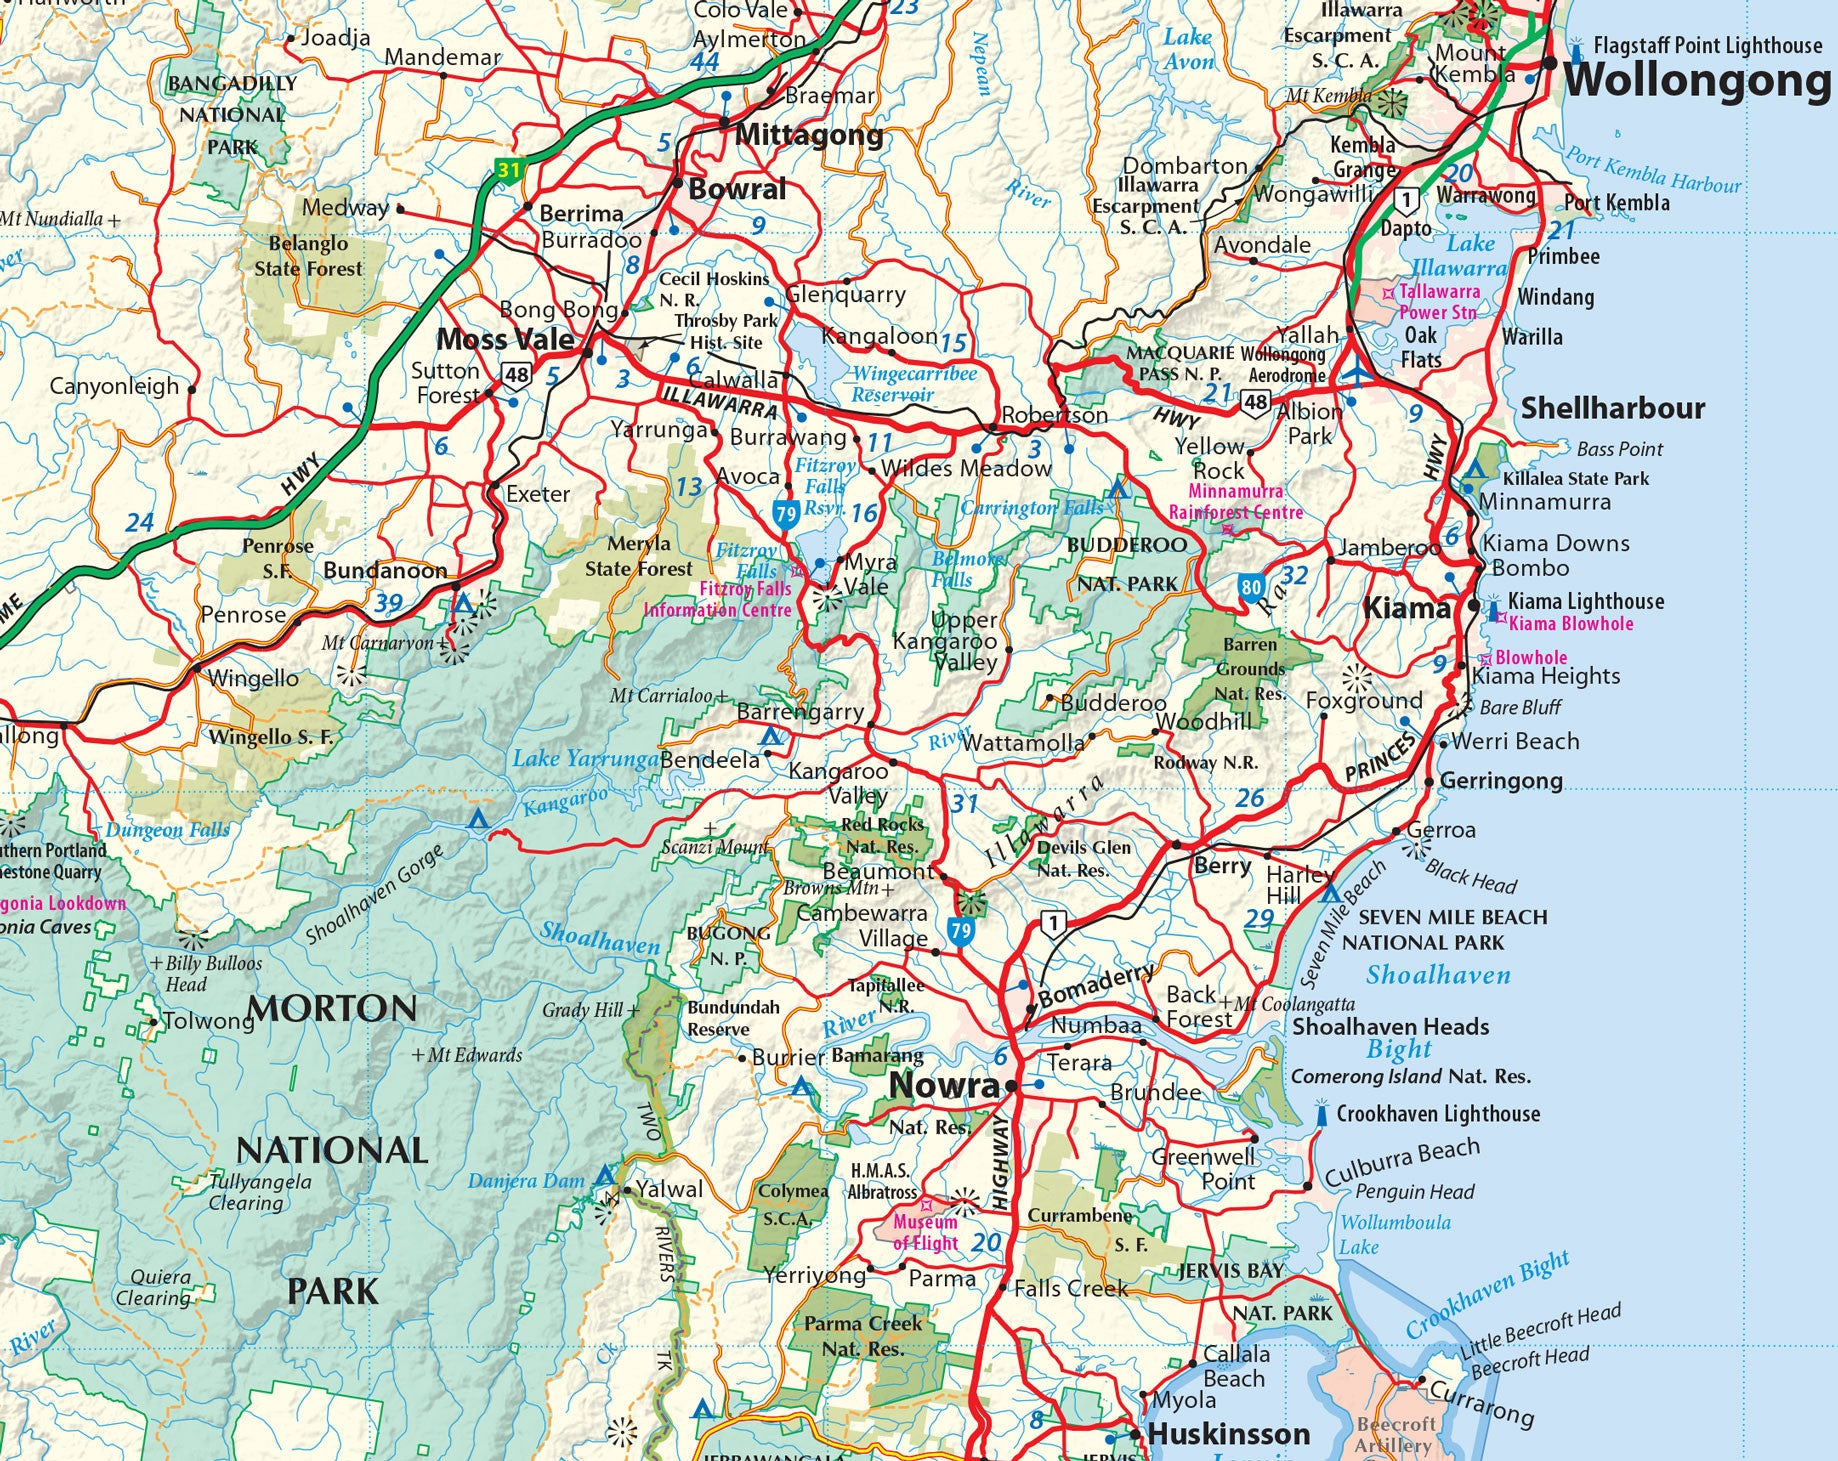 Sydney adventures 4wd map buy 4wd map for sydney mapworld sydney adventures 4wd meridian map gumiabroncs Images